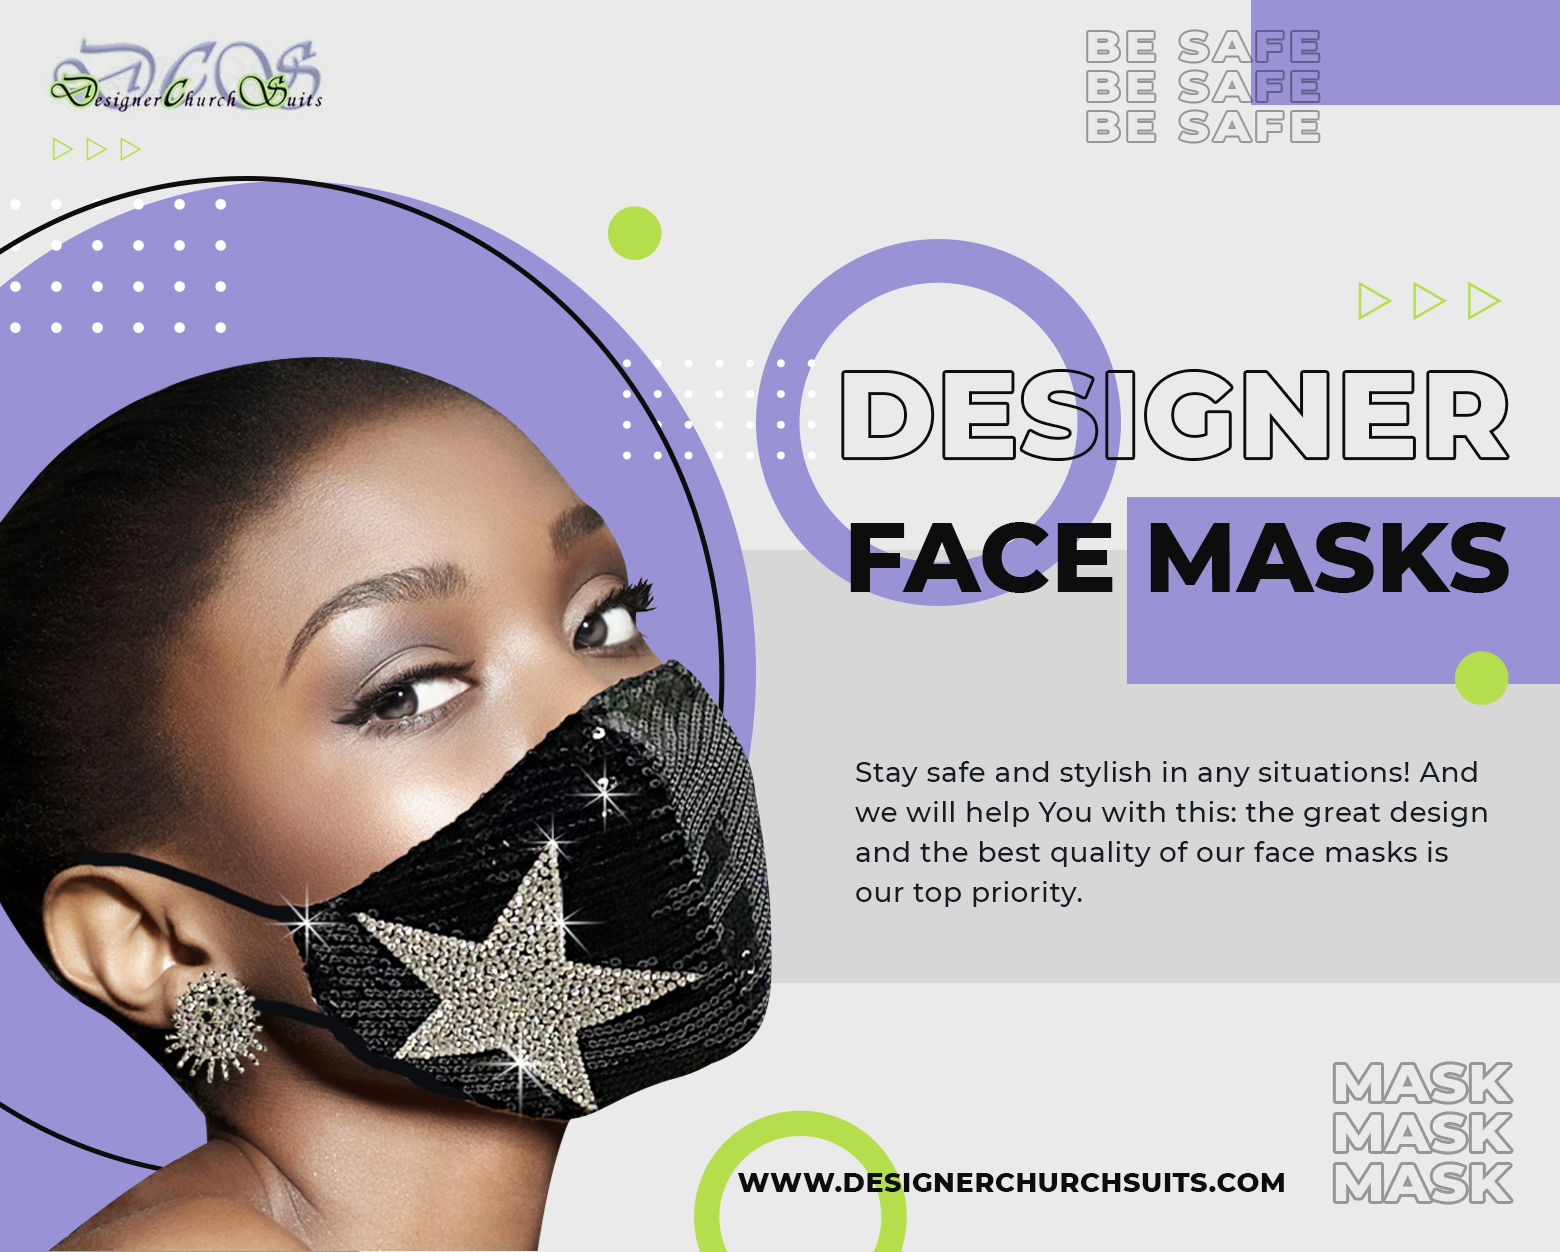 Designer Face Masks Are The New Normal. Get Yours!